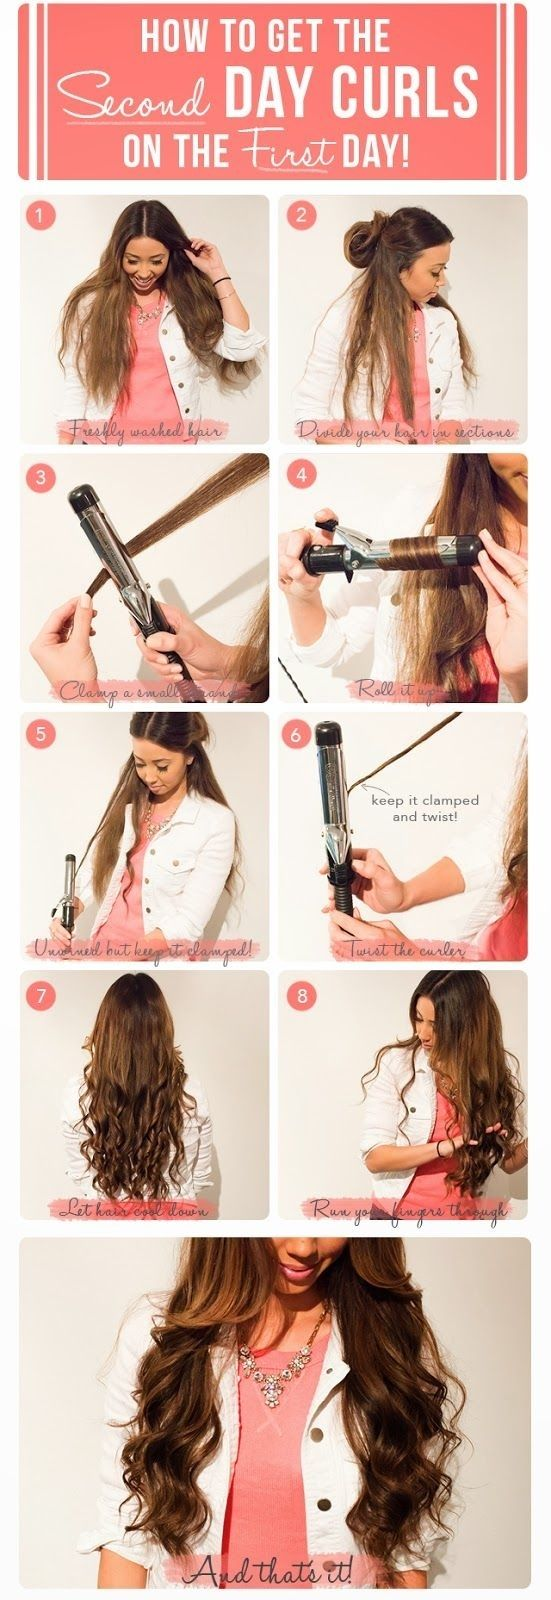 30 sensational second day hair ideas  | old hair curled